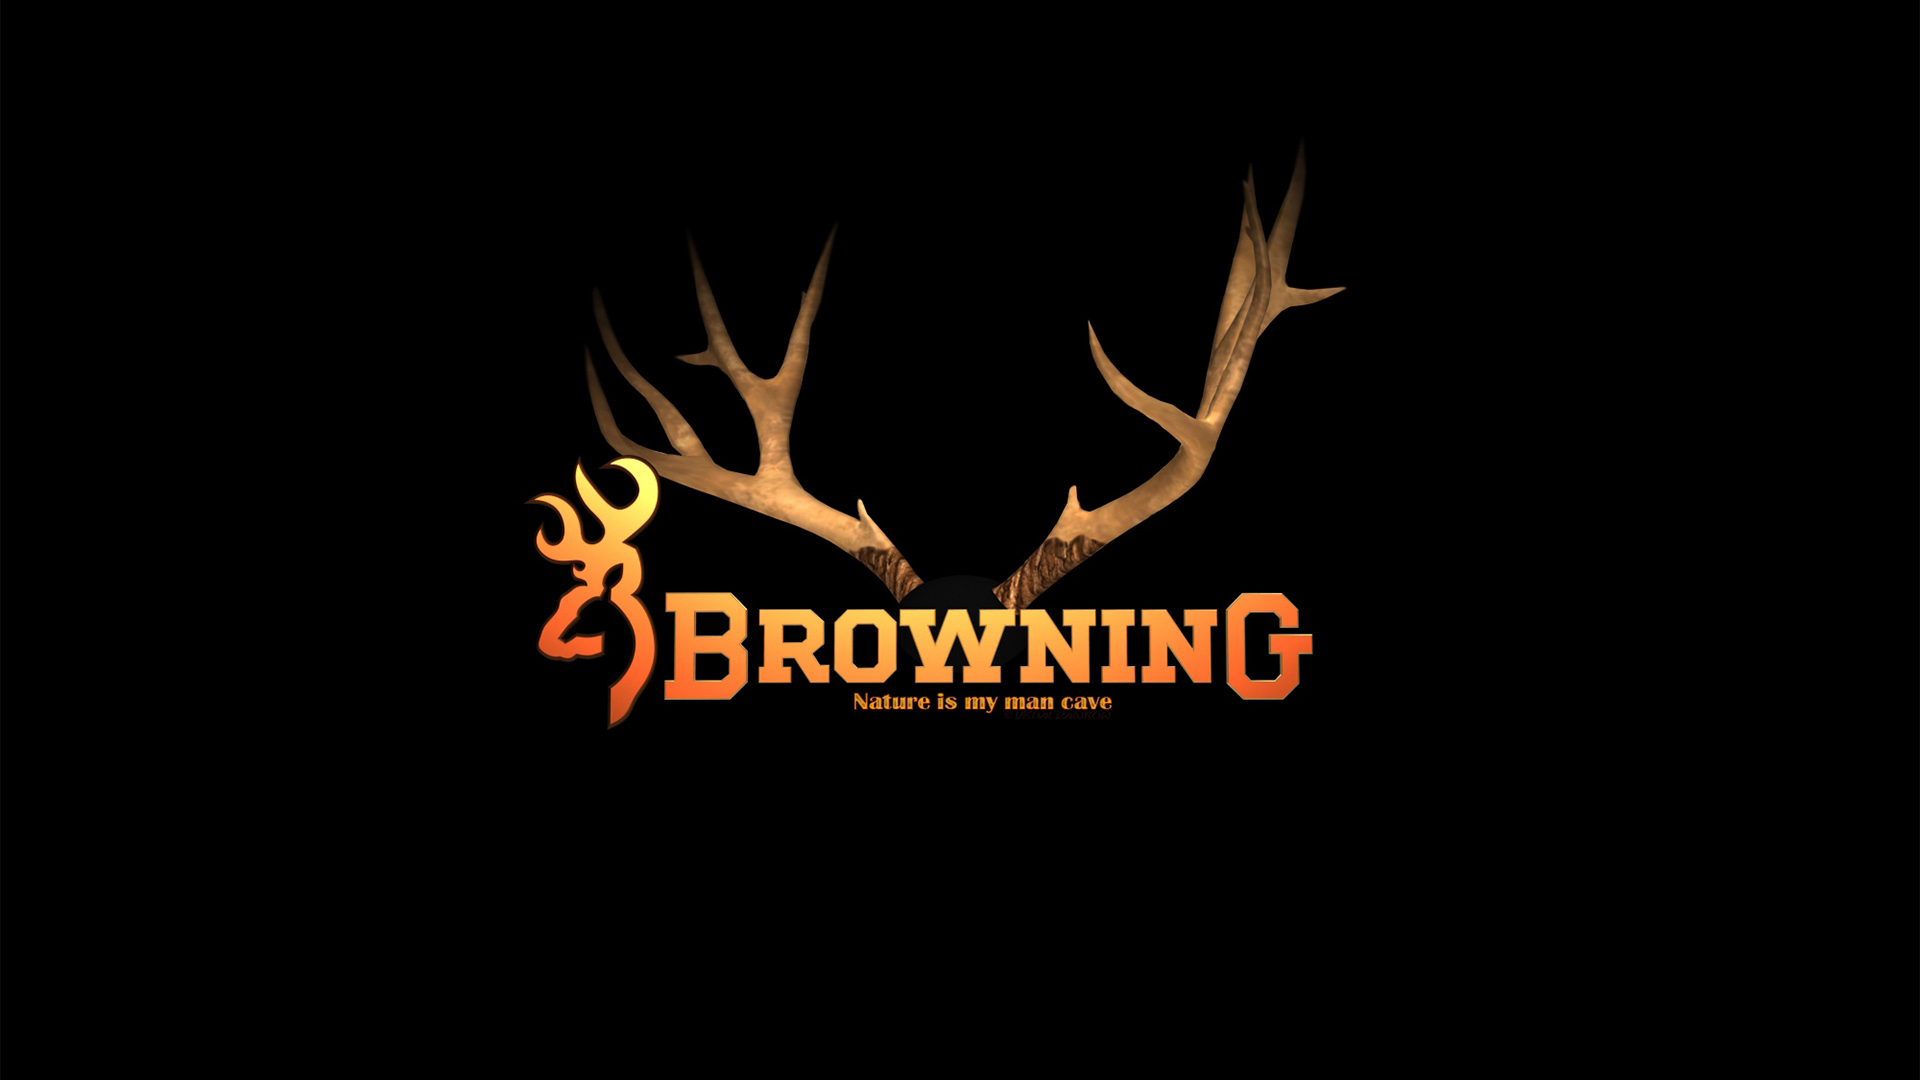 Browning Logo wallpaper   949921 1920x1080